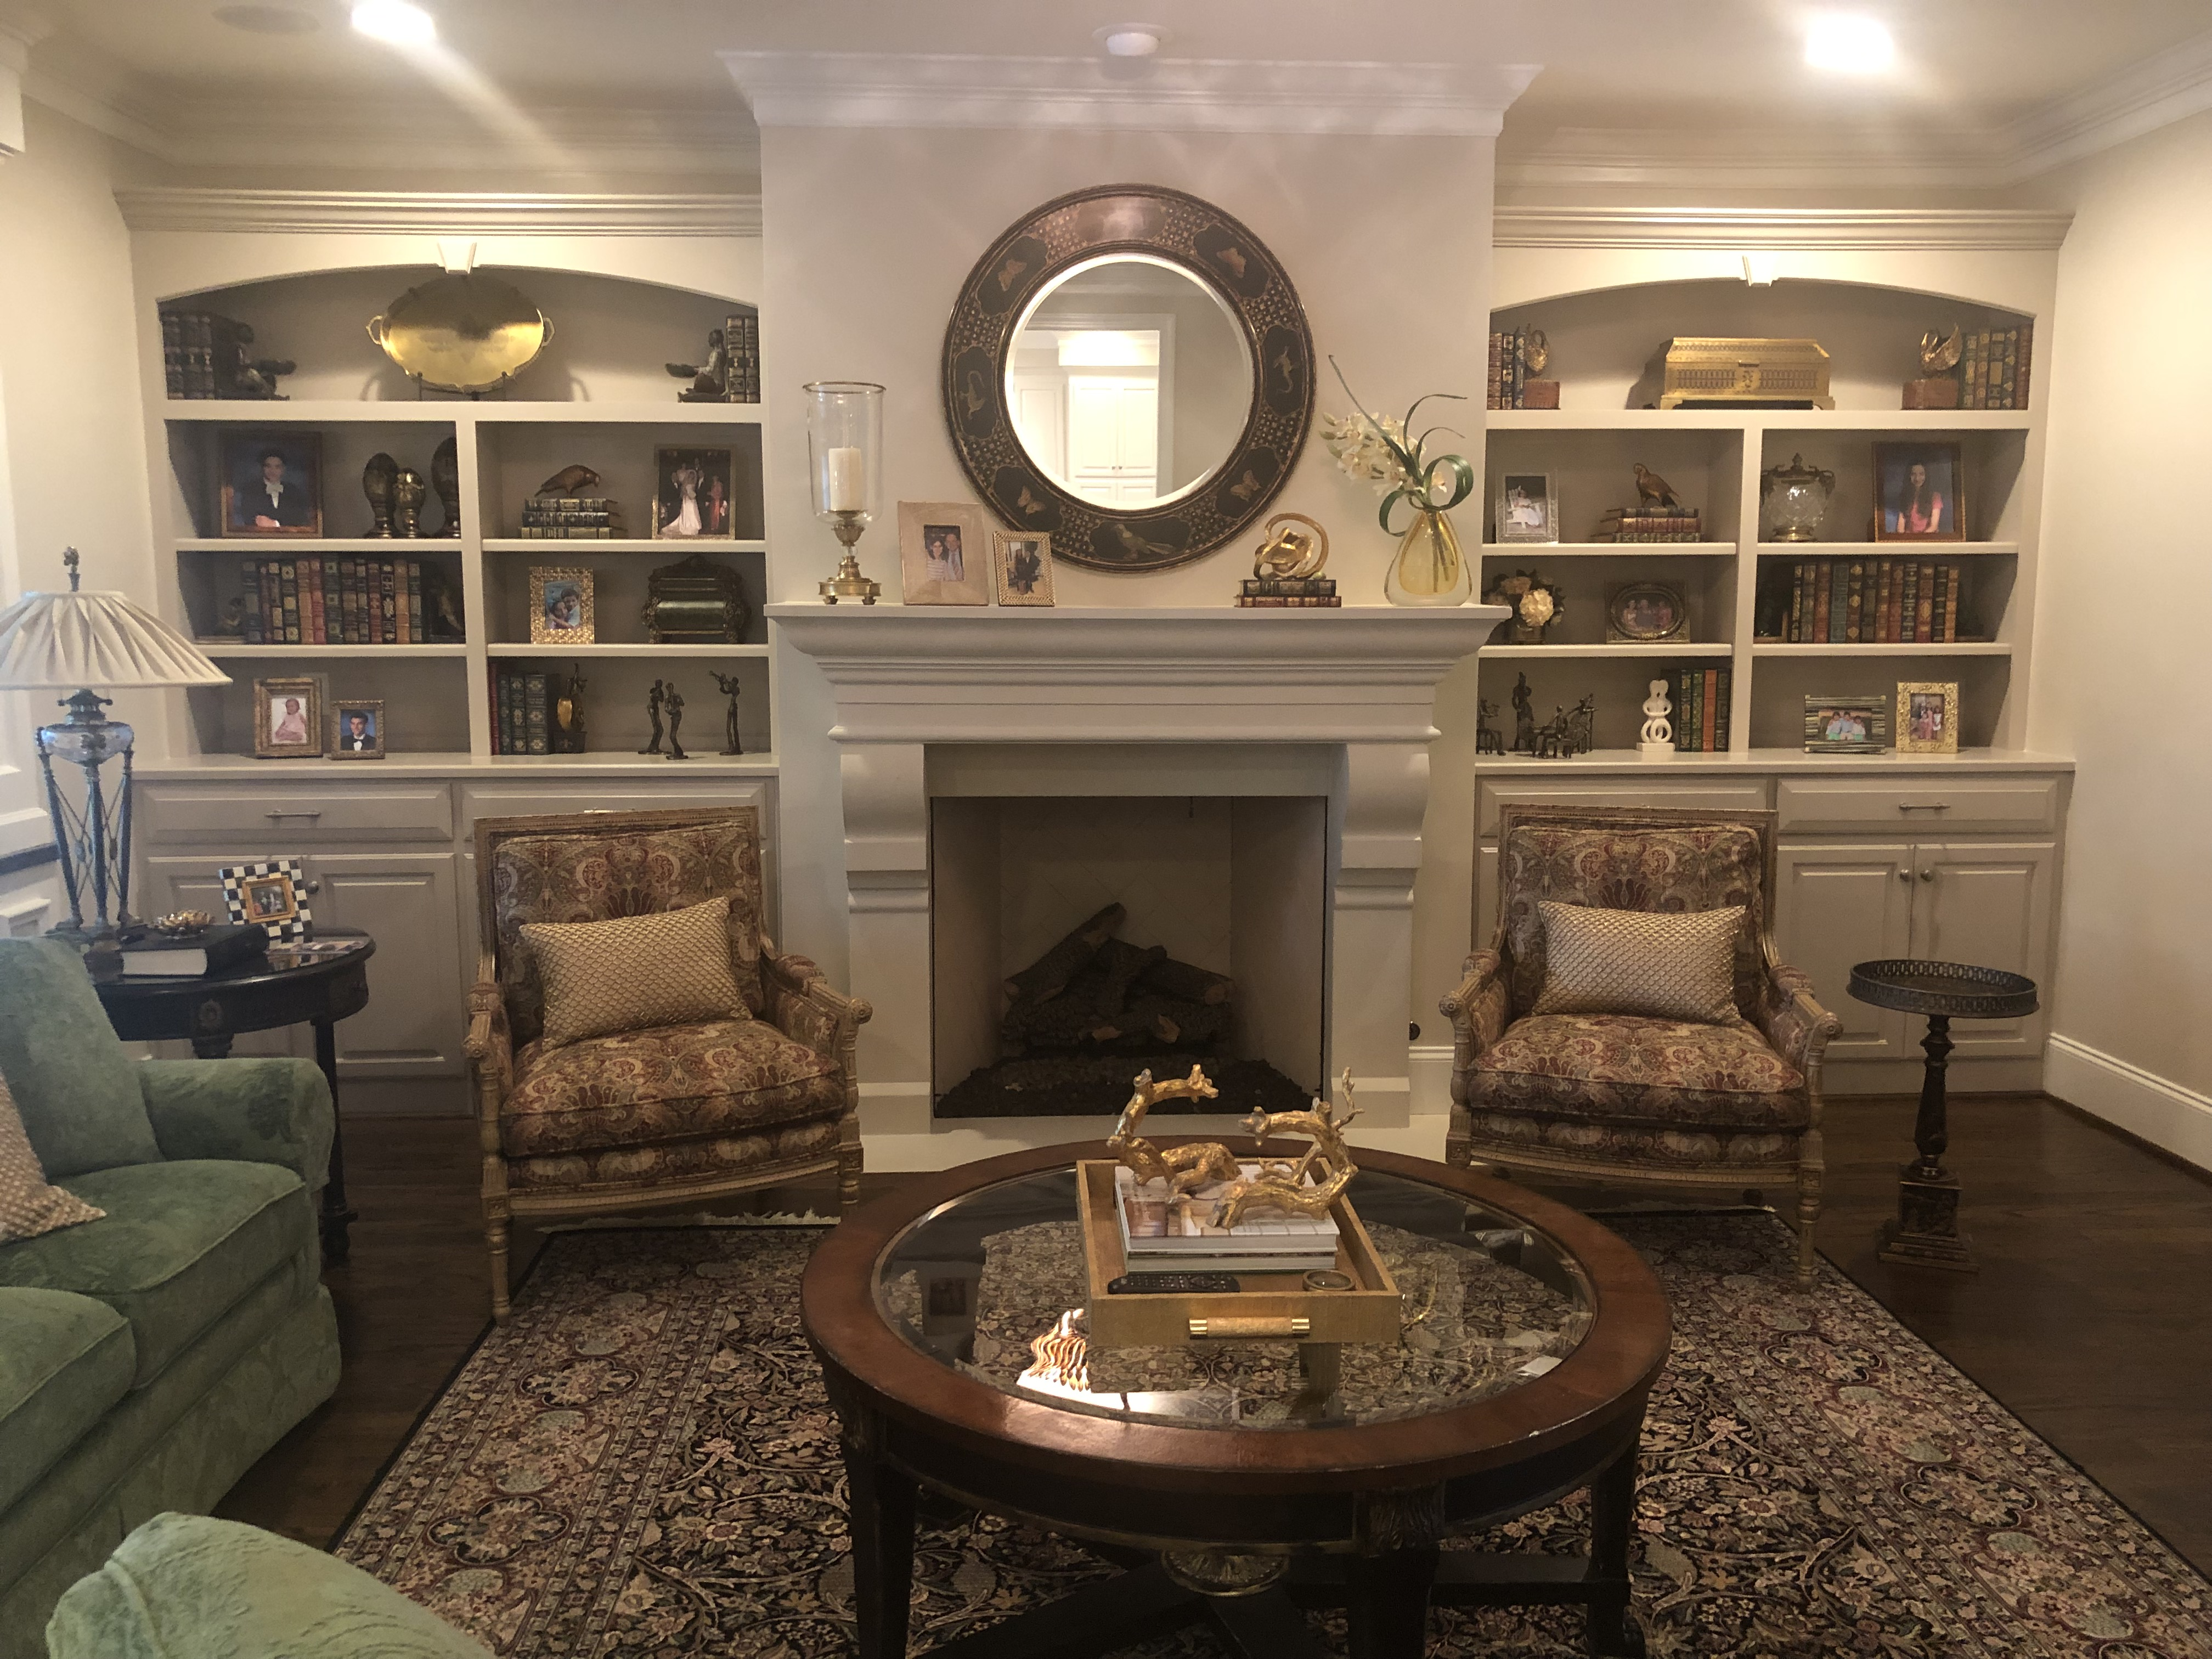 Refinished Built-ins